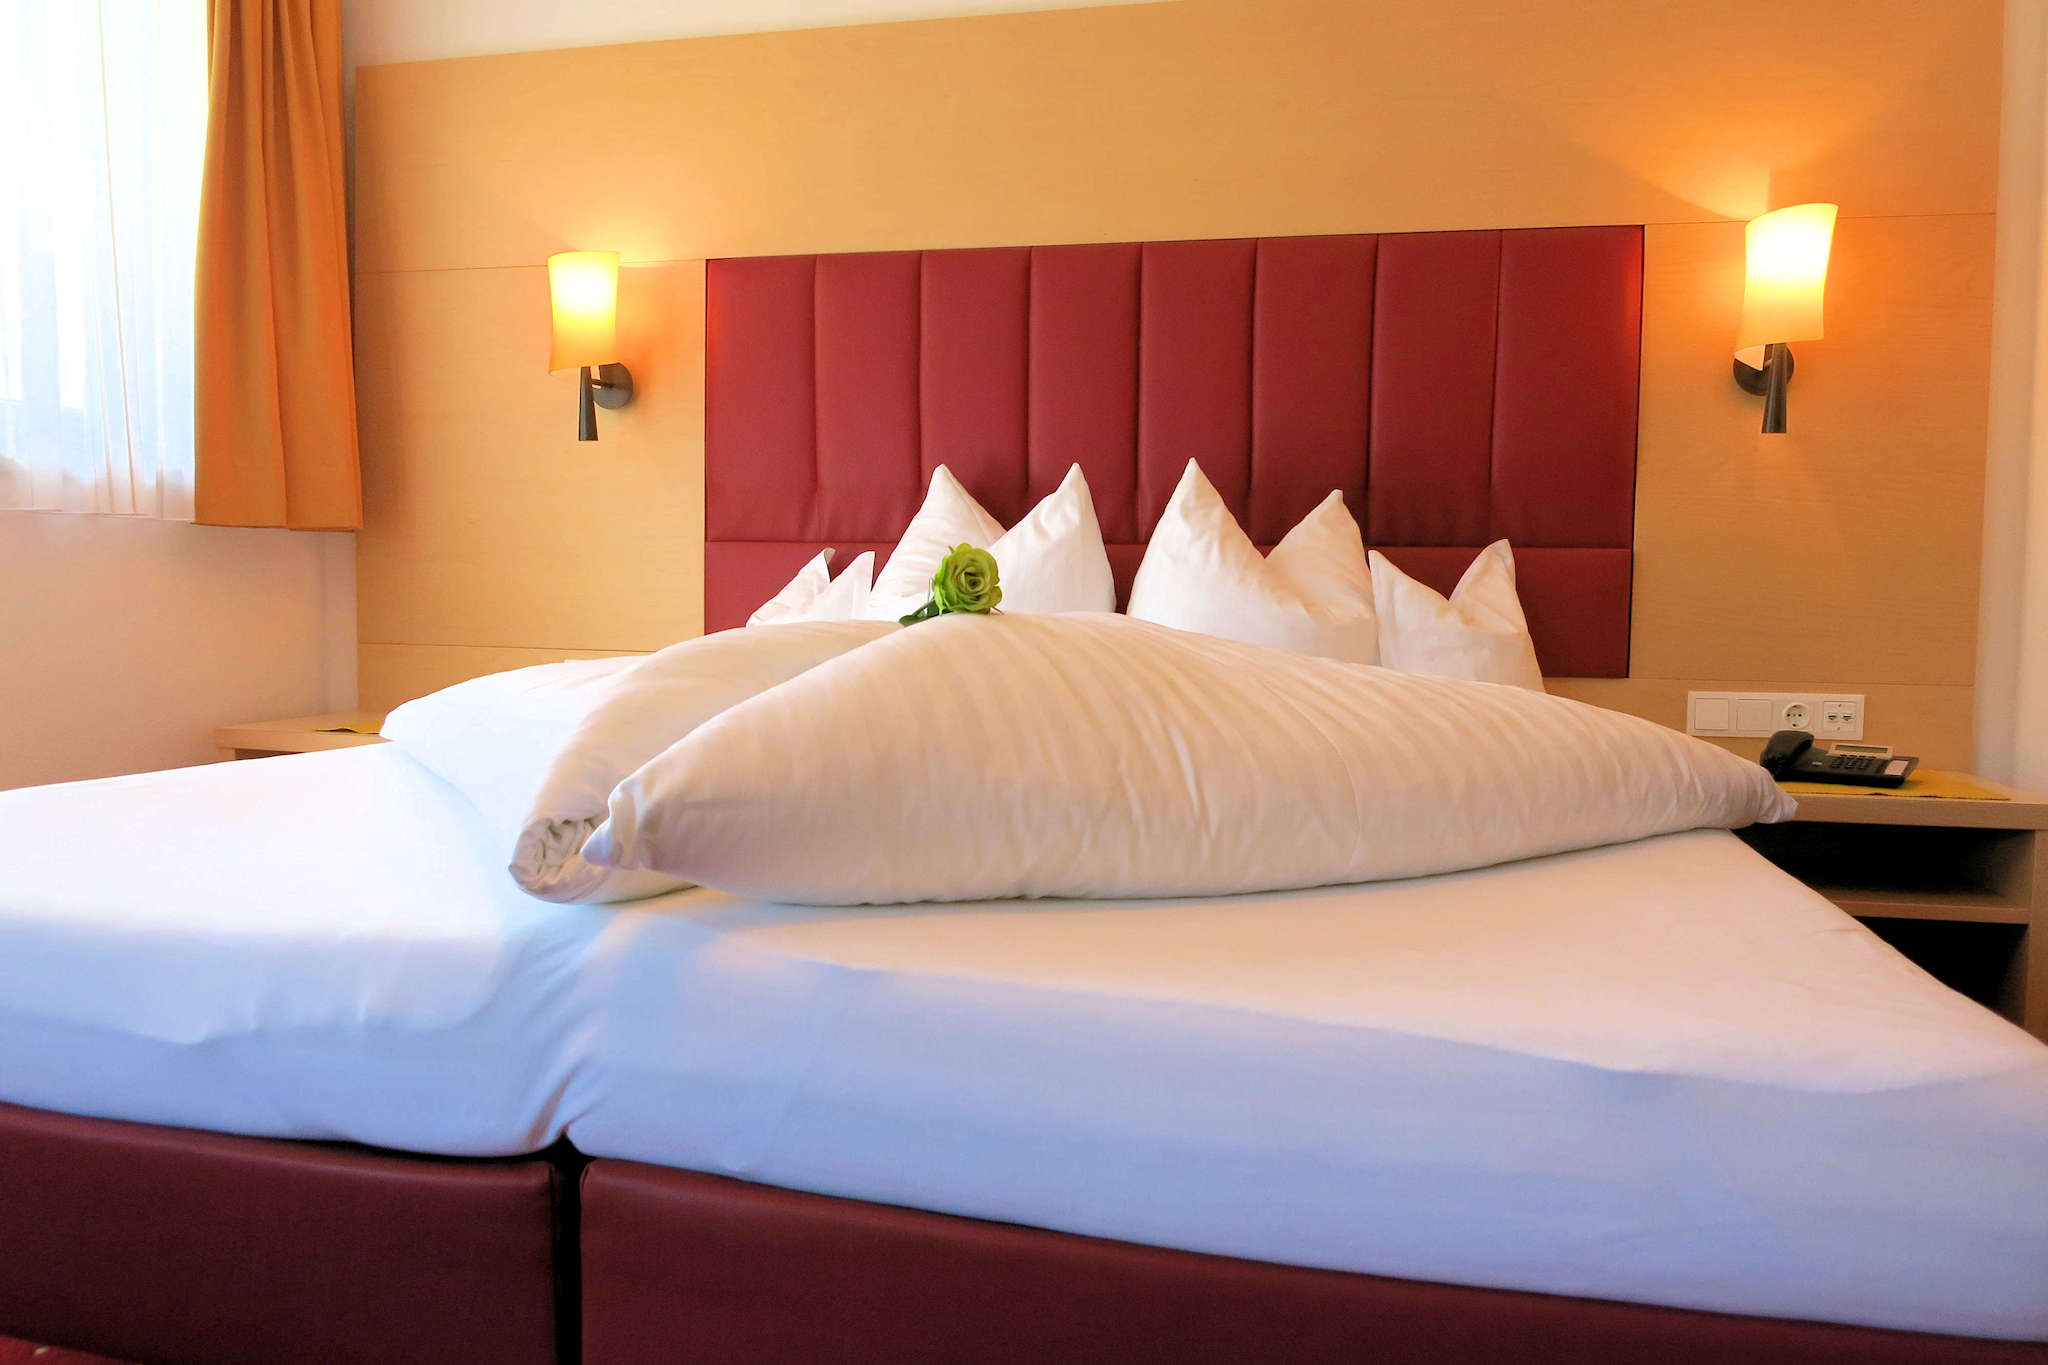 3 bettzimmer wildbach hotel gasthof j ger for Schlafcouch 2m